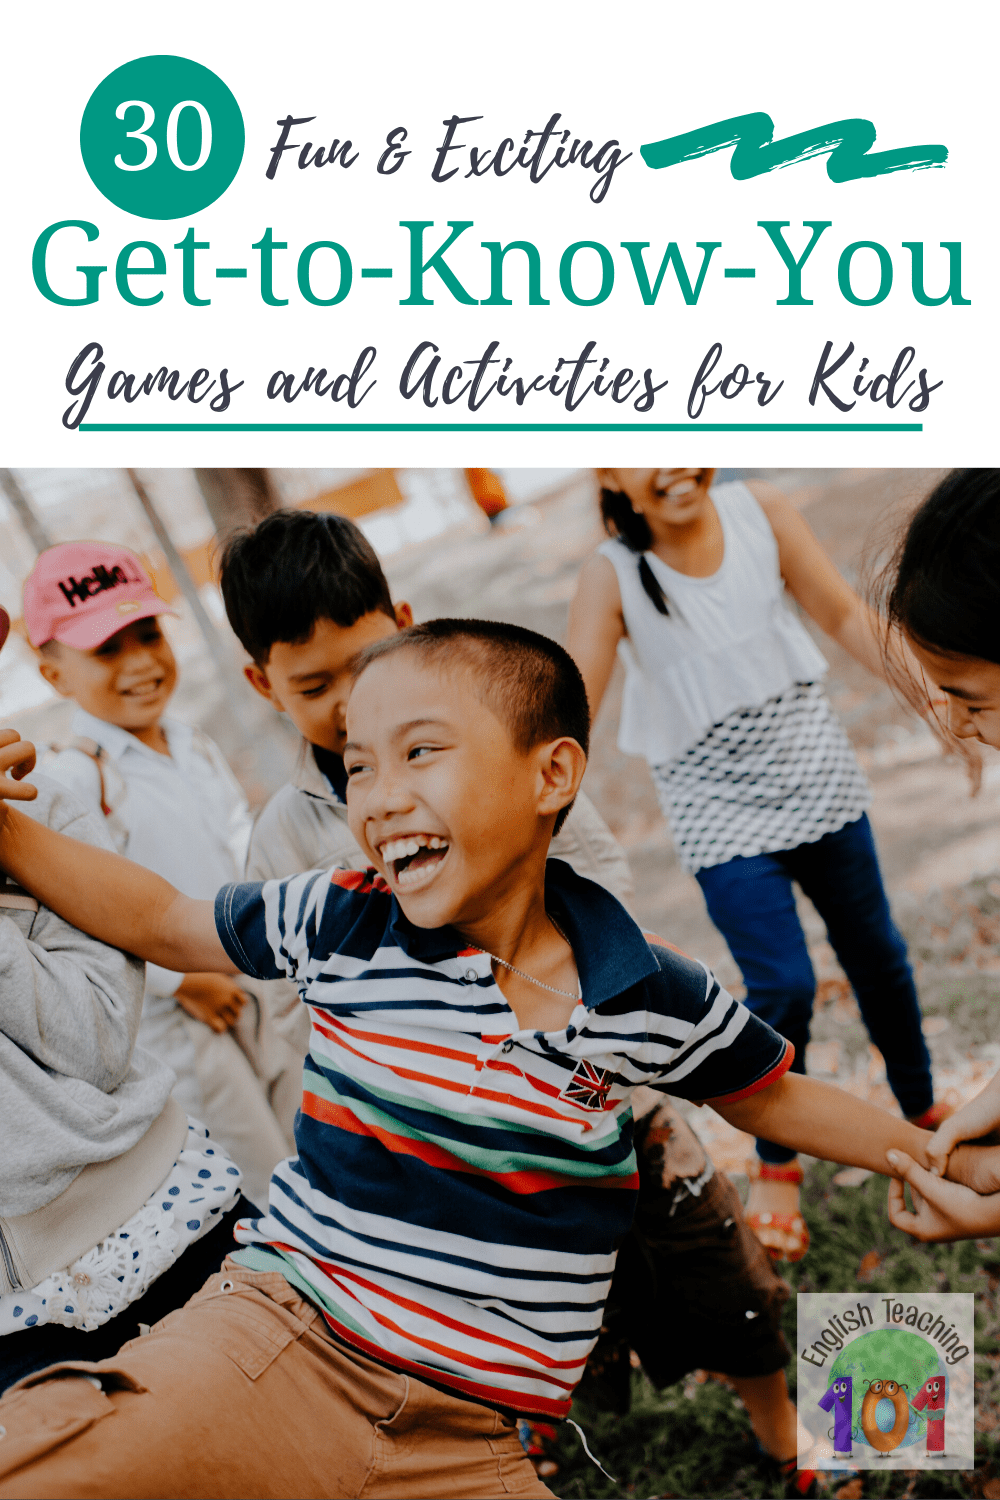 21 Get to Know You Games & Activities for Kids!  Get to know you games for kids are great not only to engage students on the first day of school, but also to warm up conferences, and clubs.